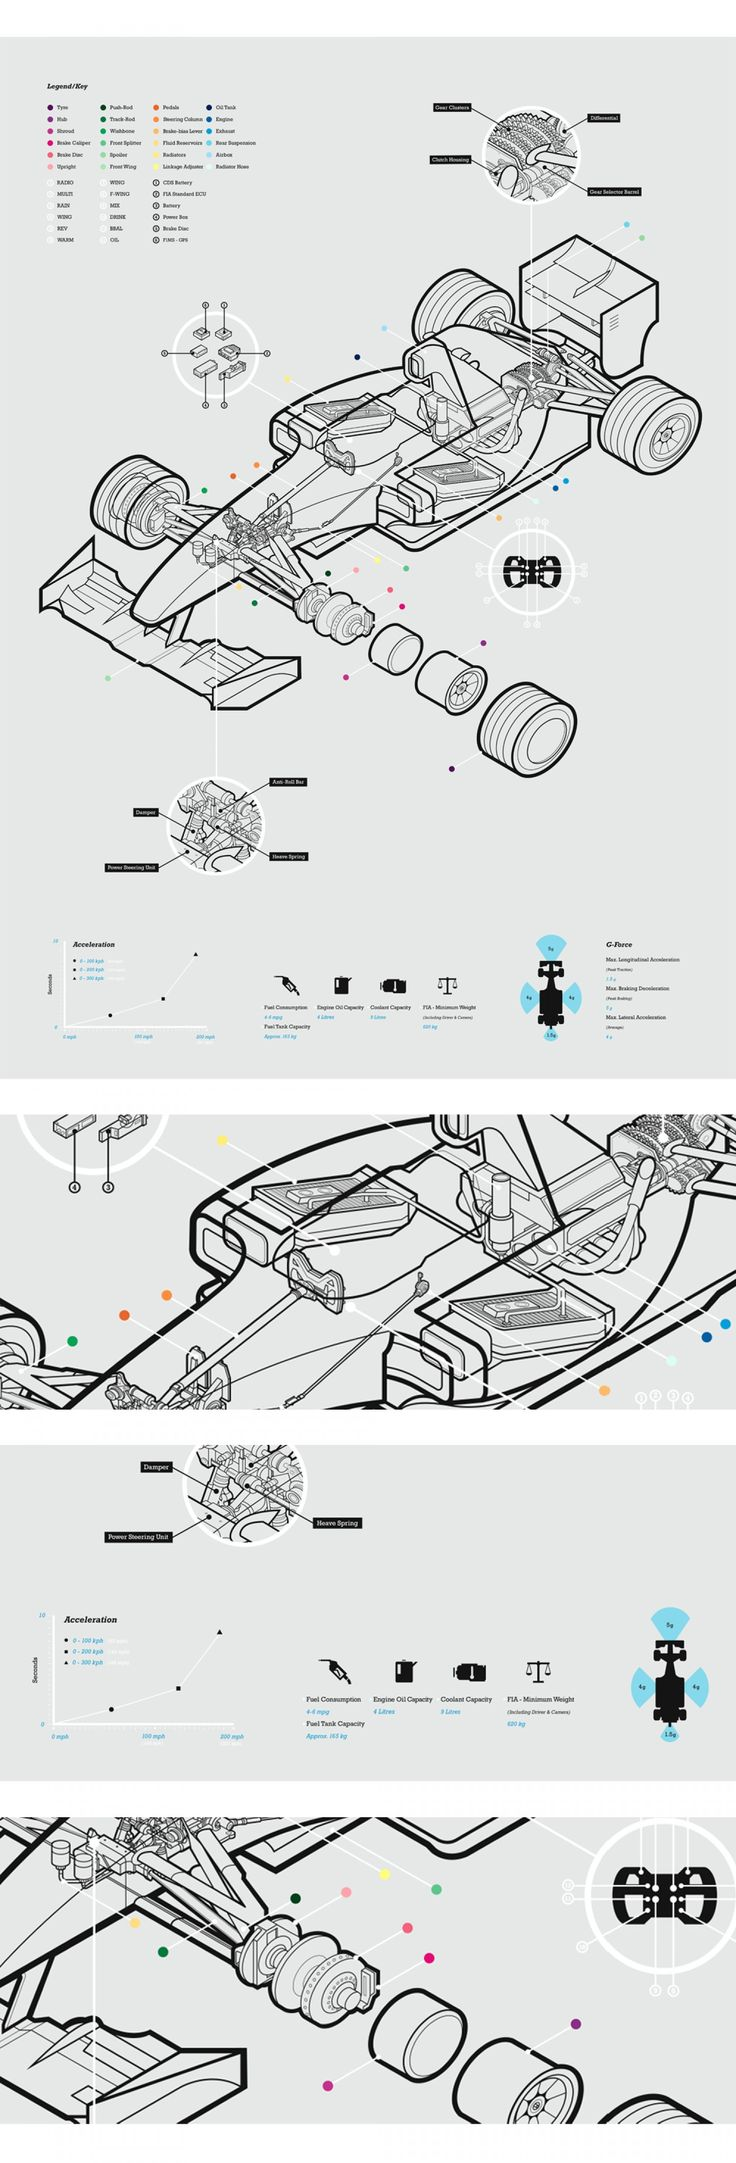 This is super clean and avoids the info graphic cliché of using huge, cramped type set in League Gothic.  Since the primary data/info being discussed is the exploded view of the car, the majority of ink is devoted to that.  In other words, this has a really high data-density.  The way color is used is awesome as well--no more than is necessary but it doesn't feel too barren either.  I really like that there is actually so little color in this, but so many colors.  Also F1 cars are cool.